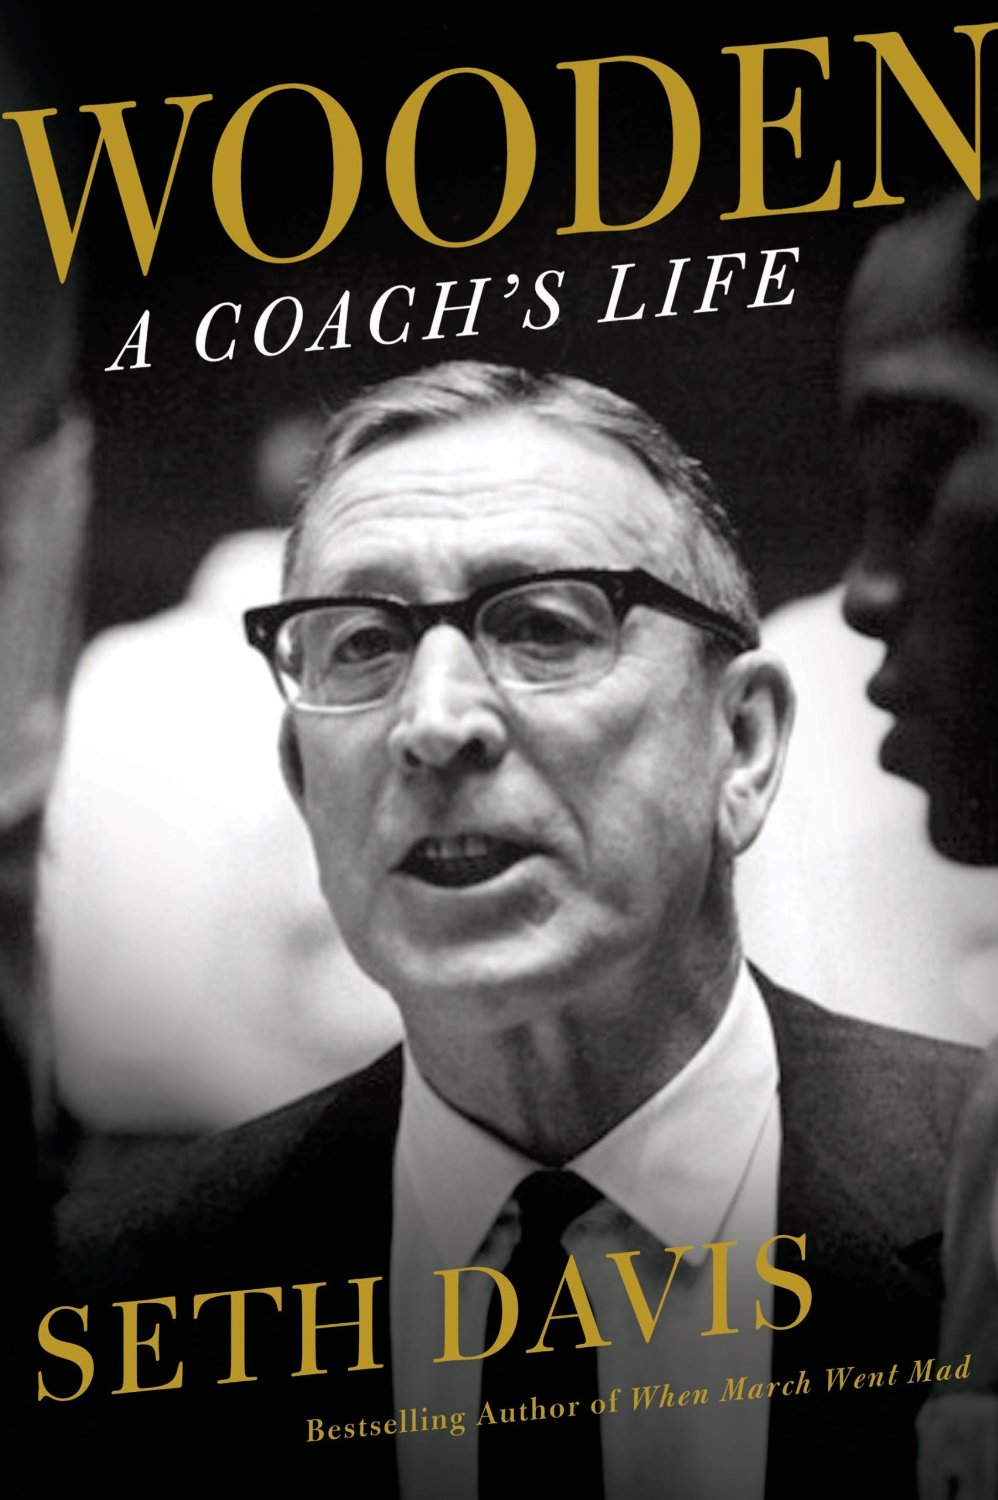 WoodenCoach'sLifeSethDavisBookReview